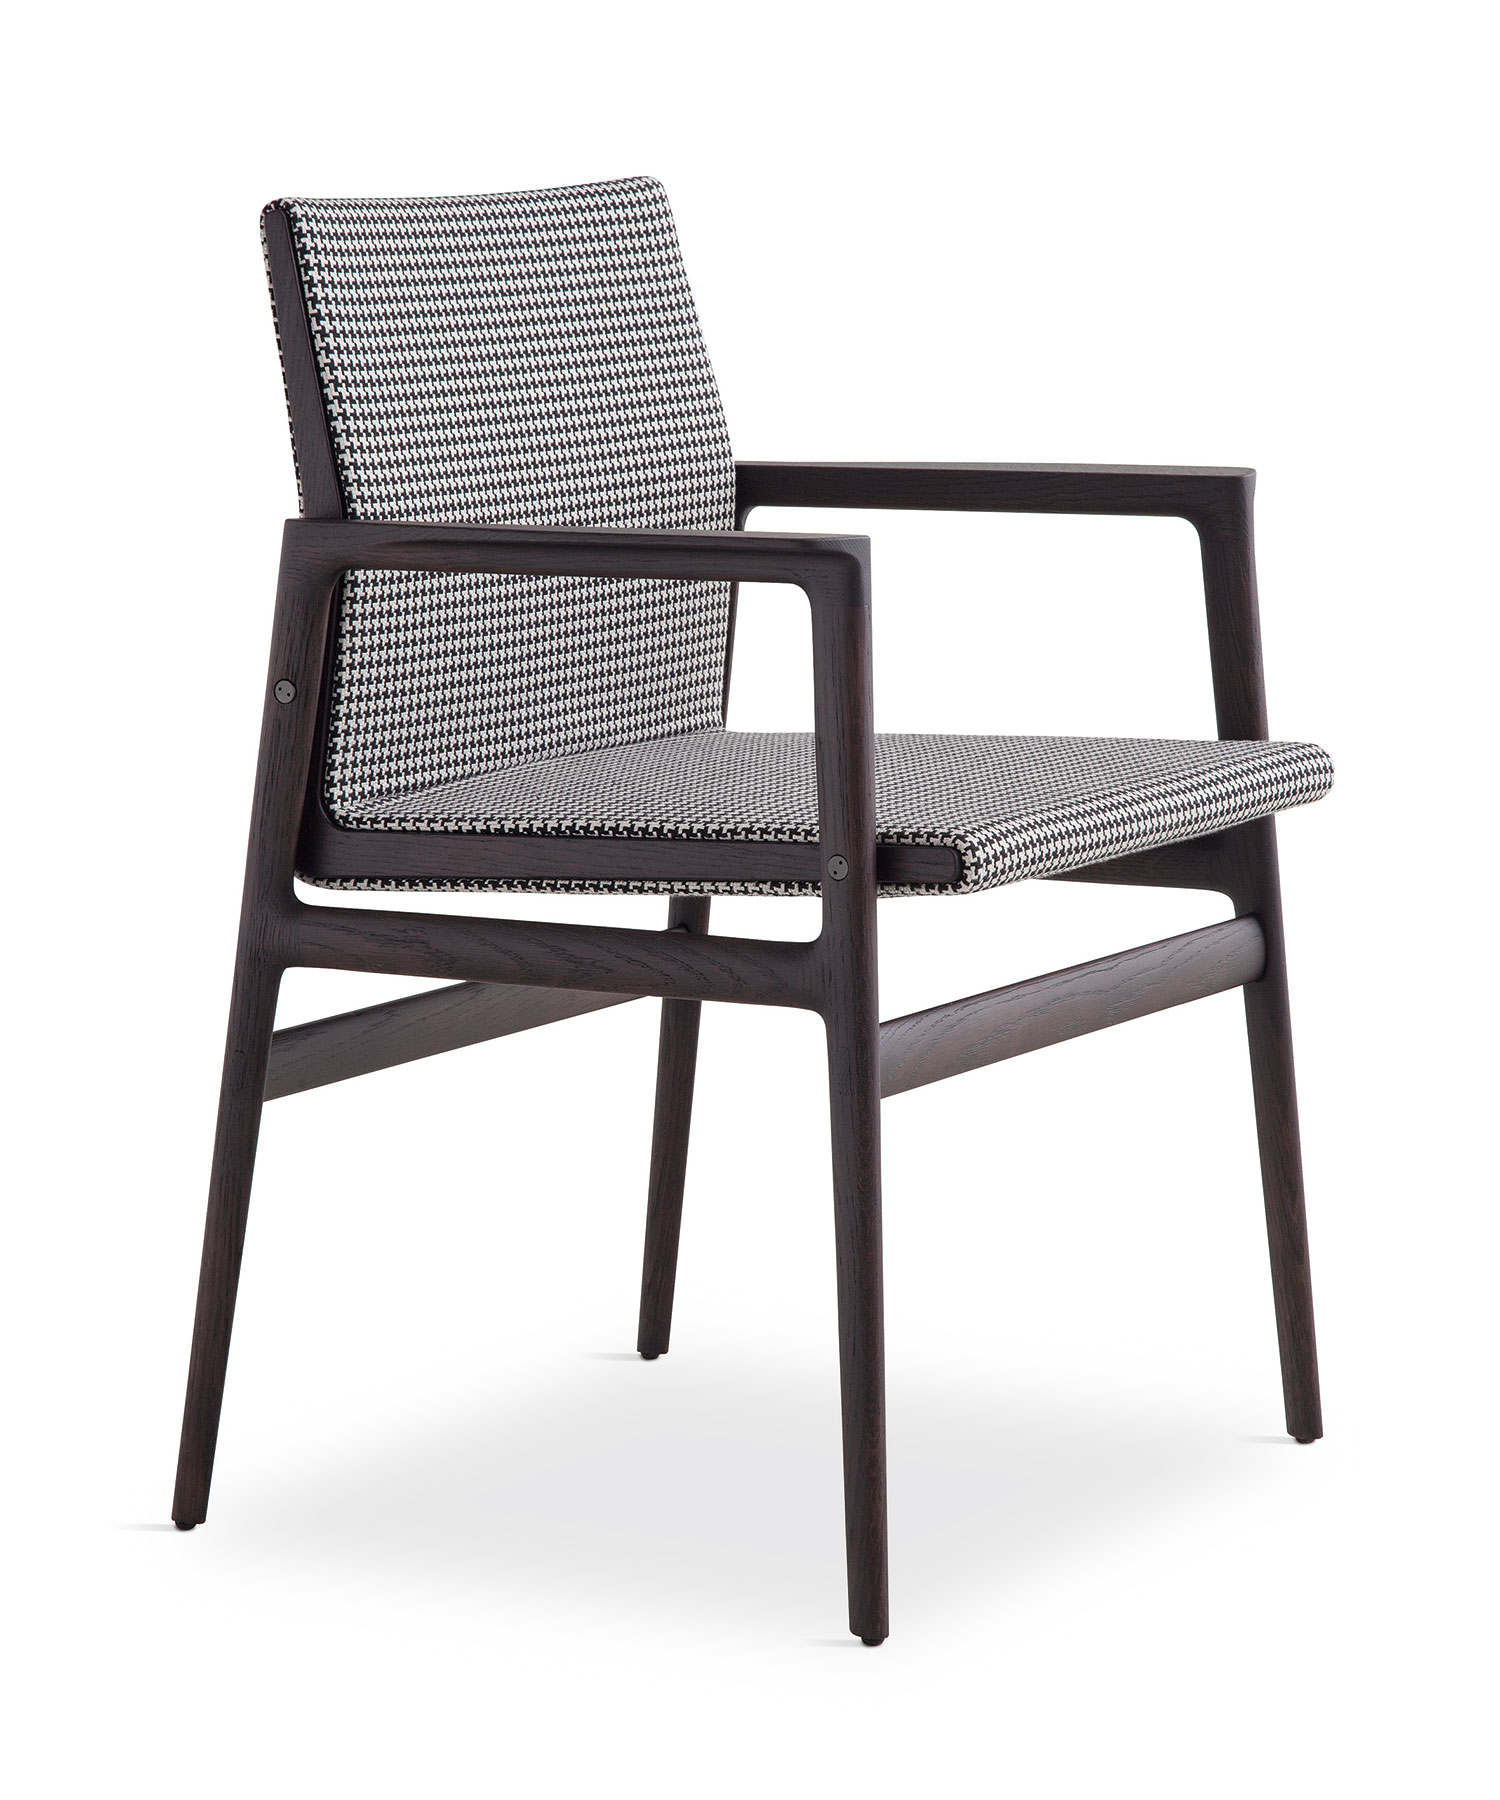 chair mobile stand swing patio best new furniture at salone del 2015